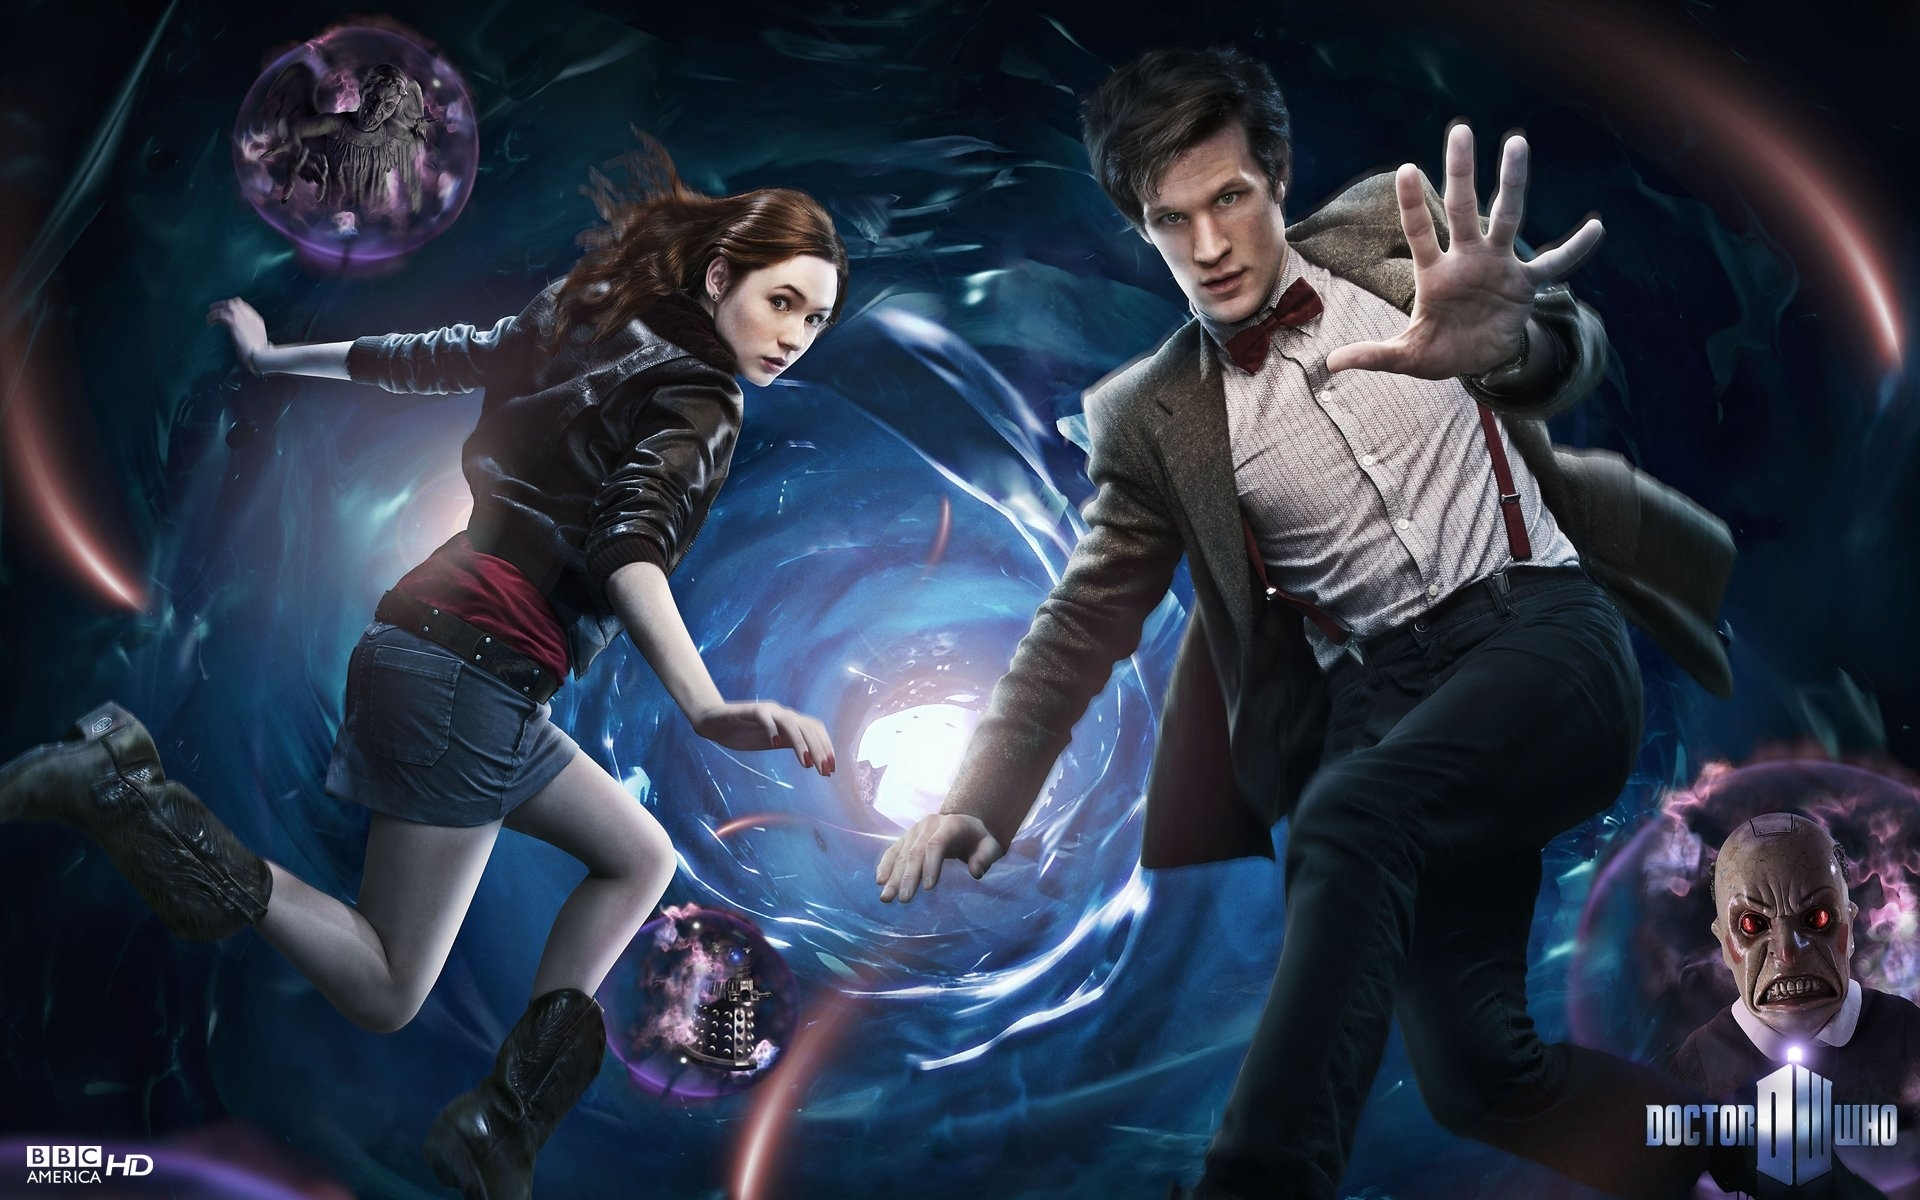 doctor who matt smith and amy pond - walldevil